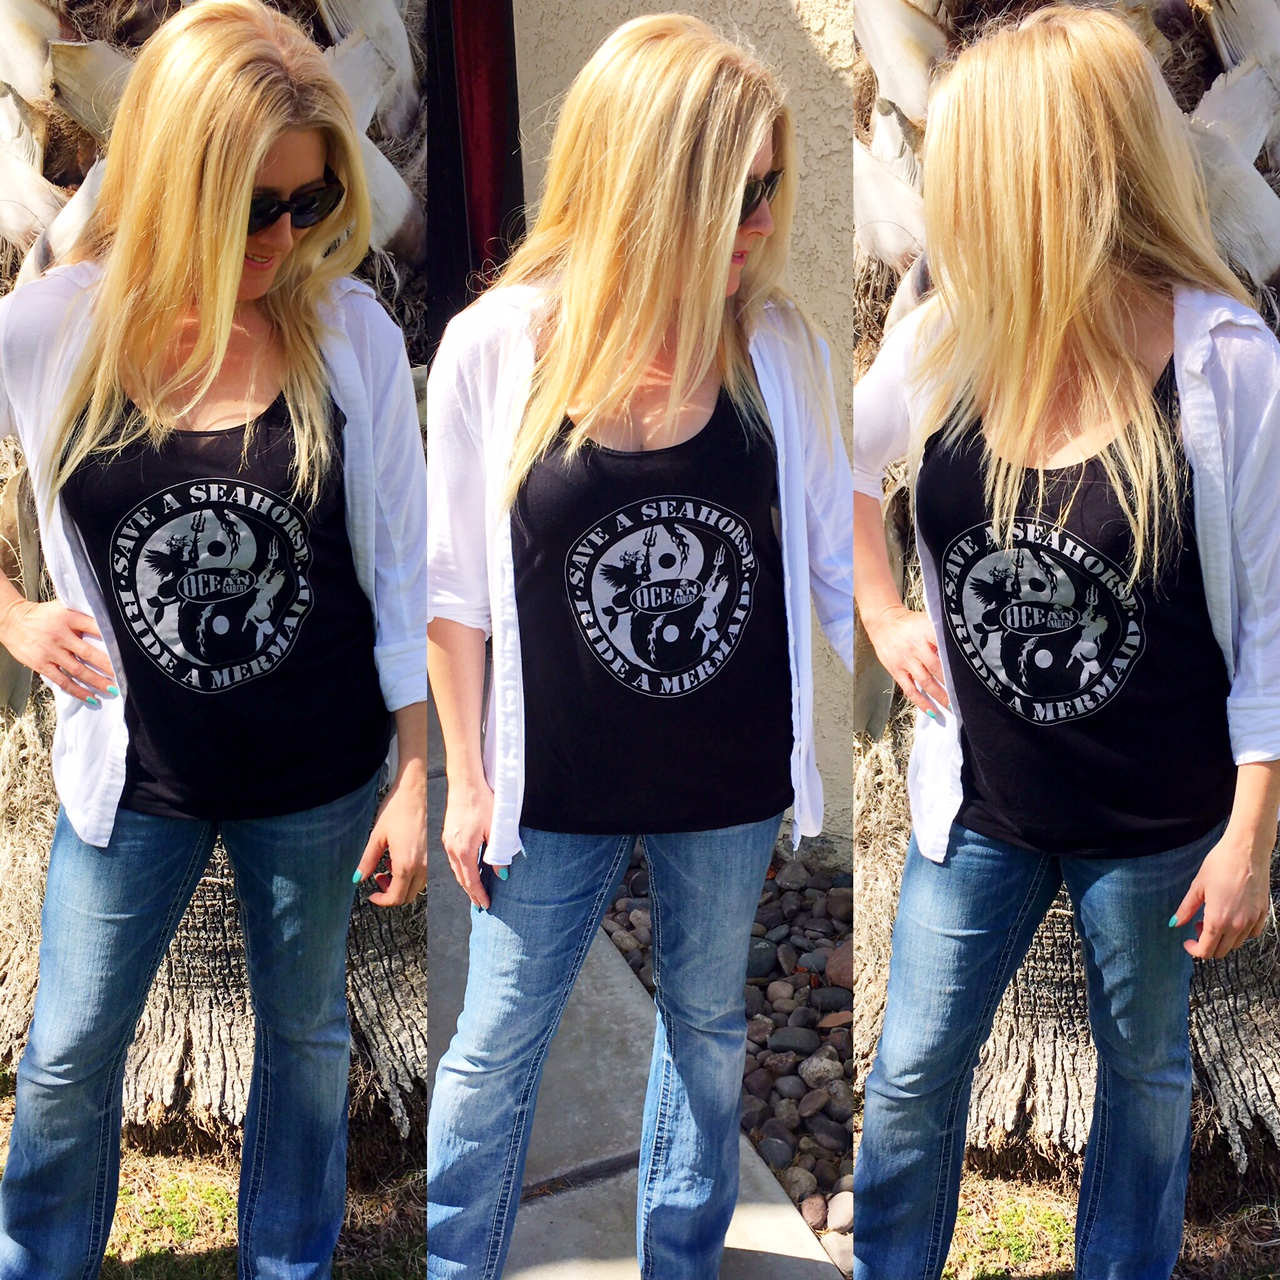 Save a Seahorse Ride a Mermaid Ocean Anarchy By ICJUK Black Slouchy Tank